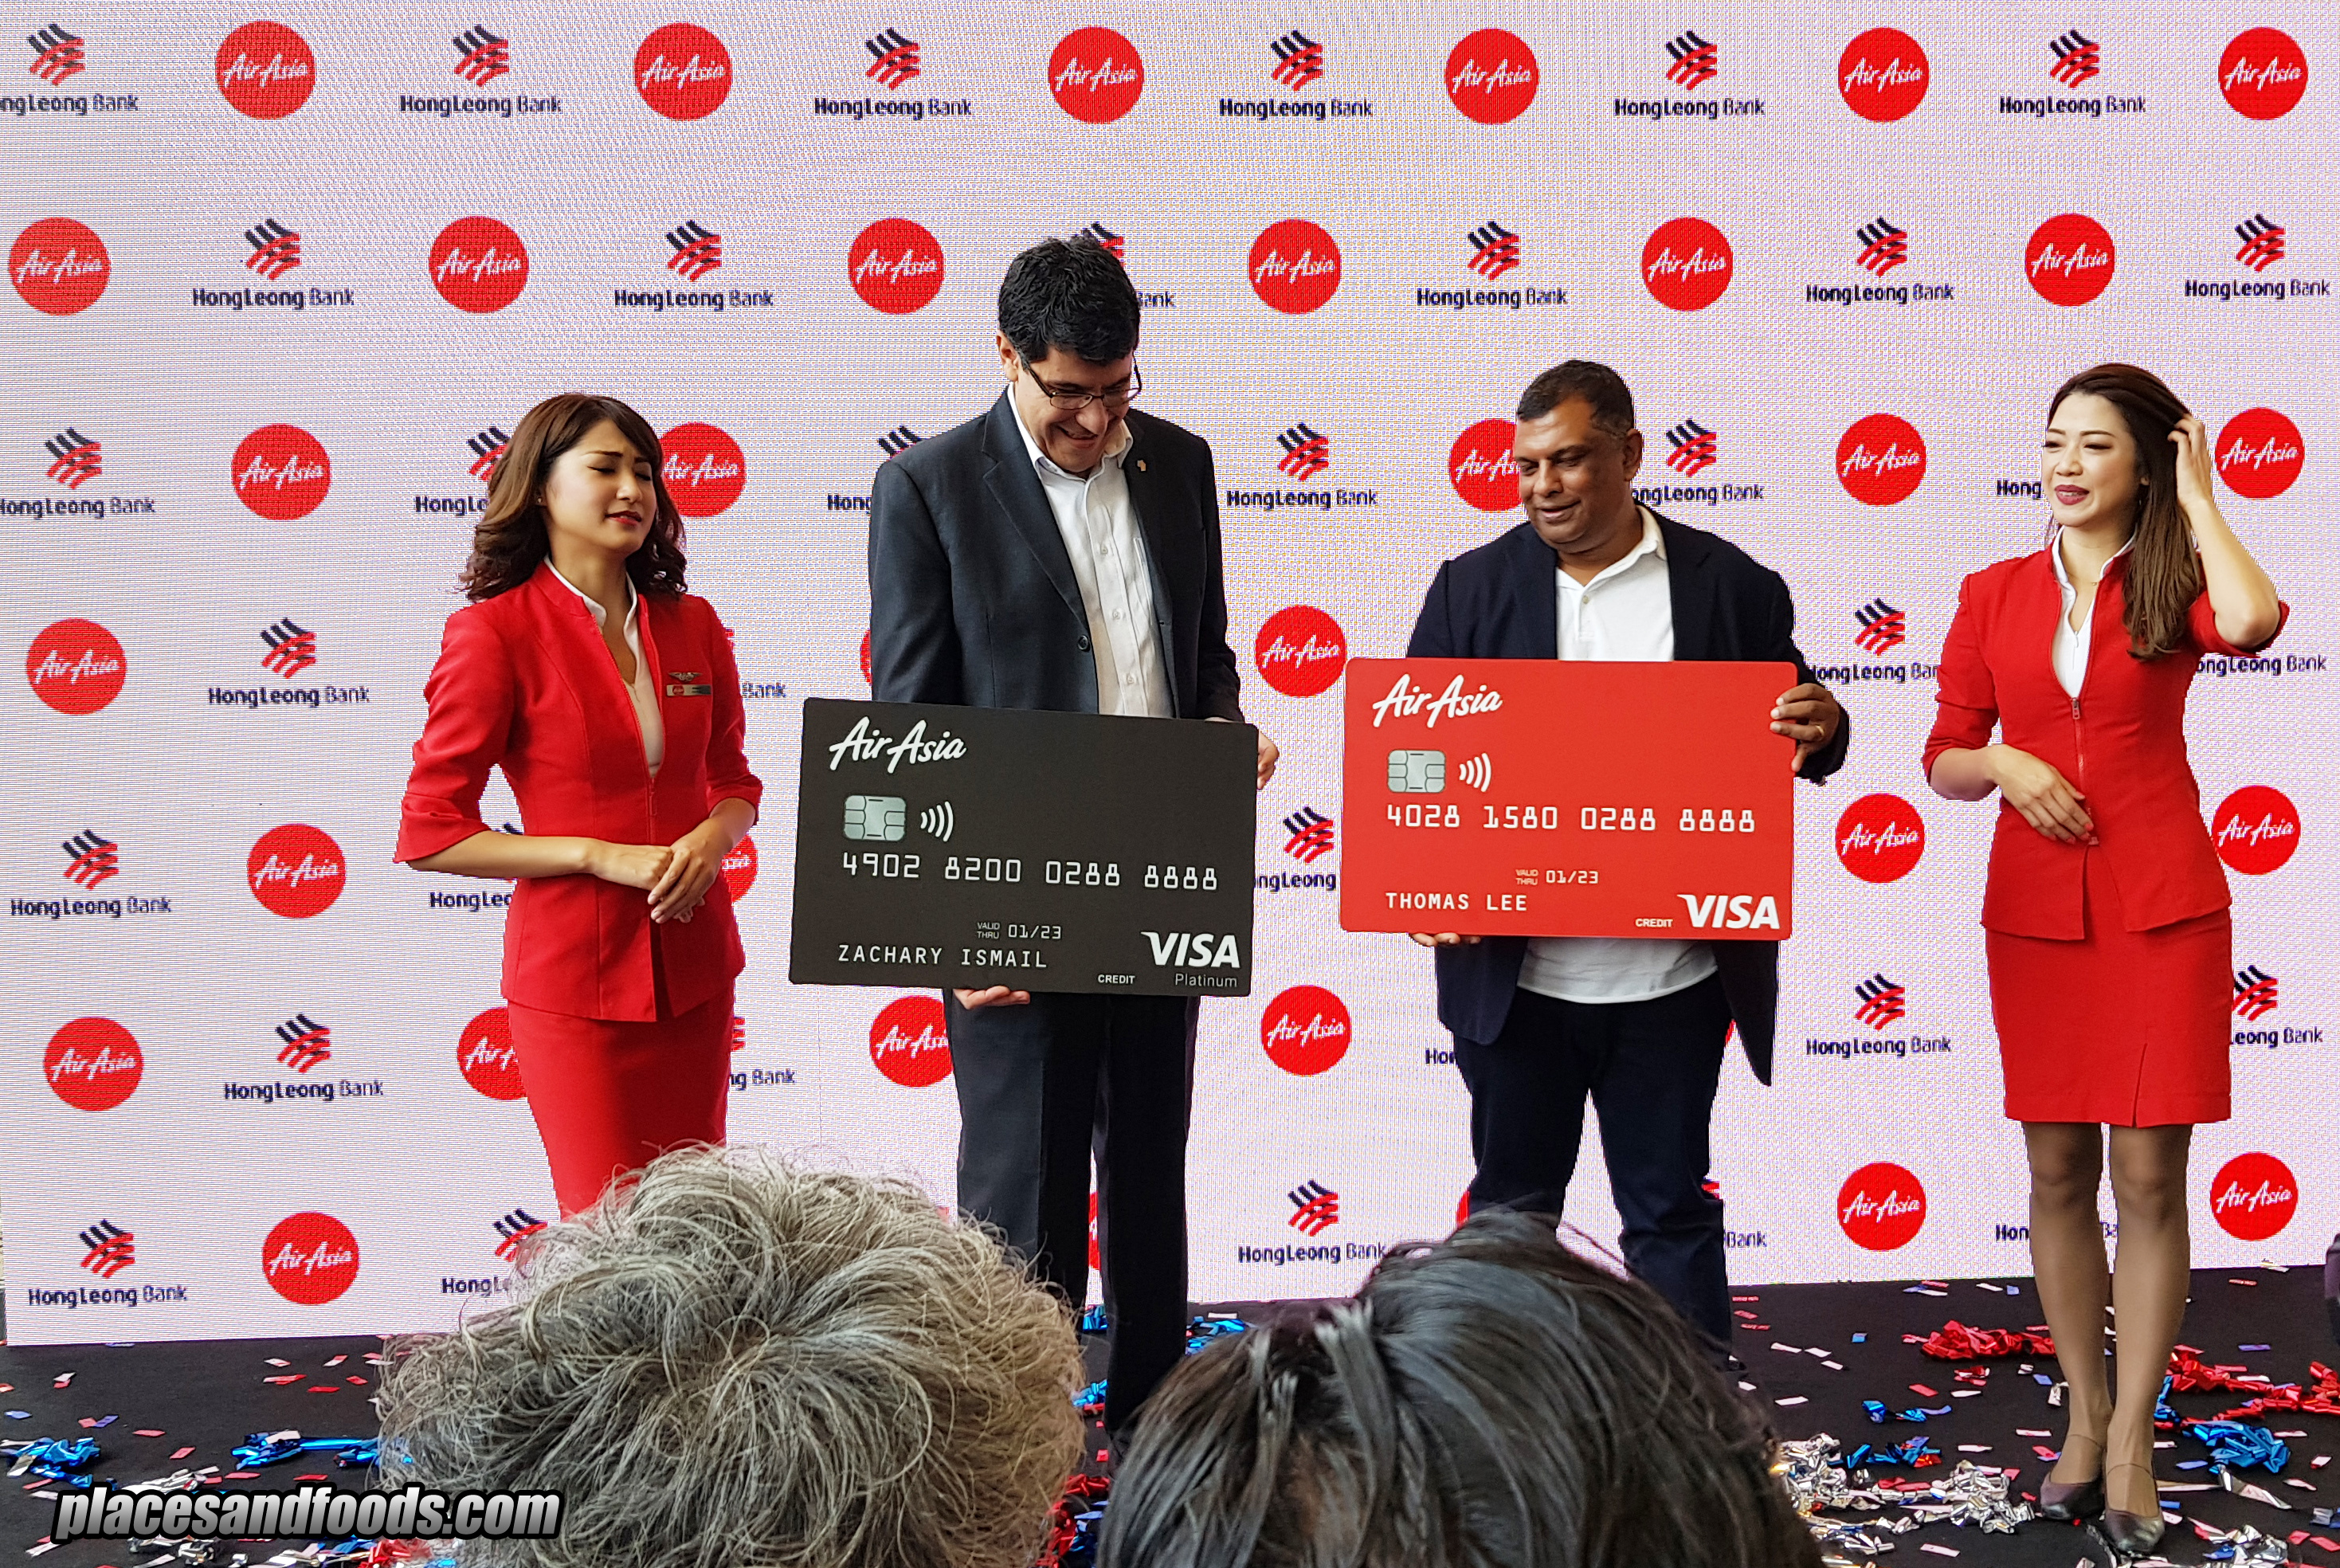 6 Reasons Why You Should Apply AirAsia Hong Leong Bank Credit Card